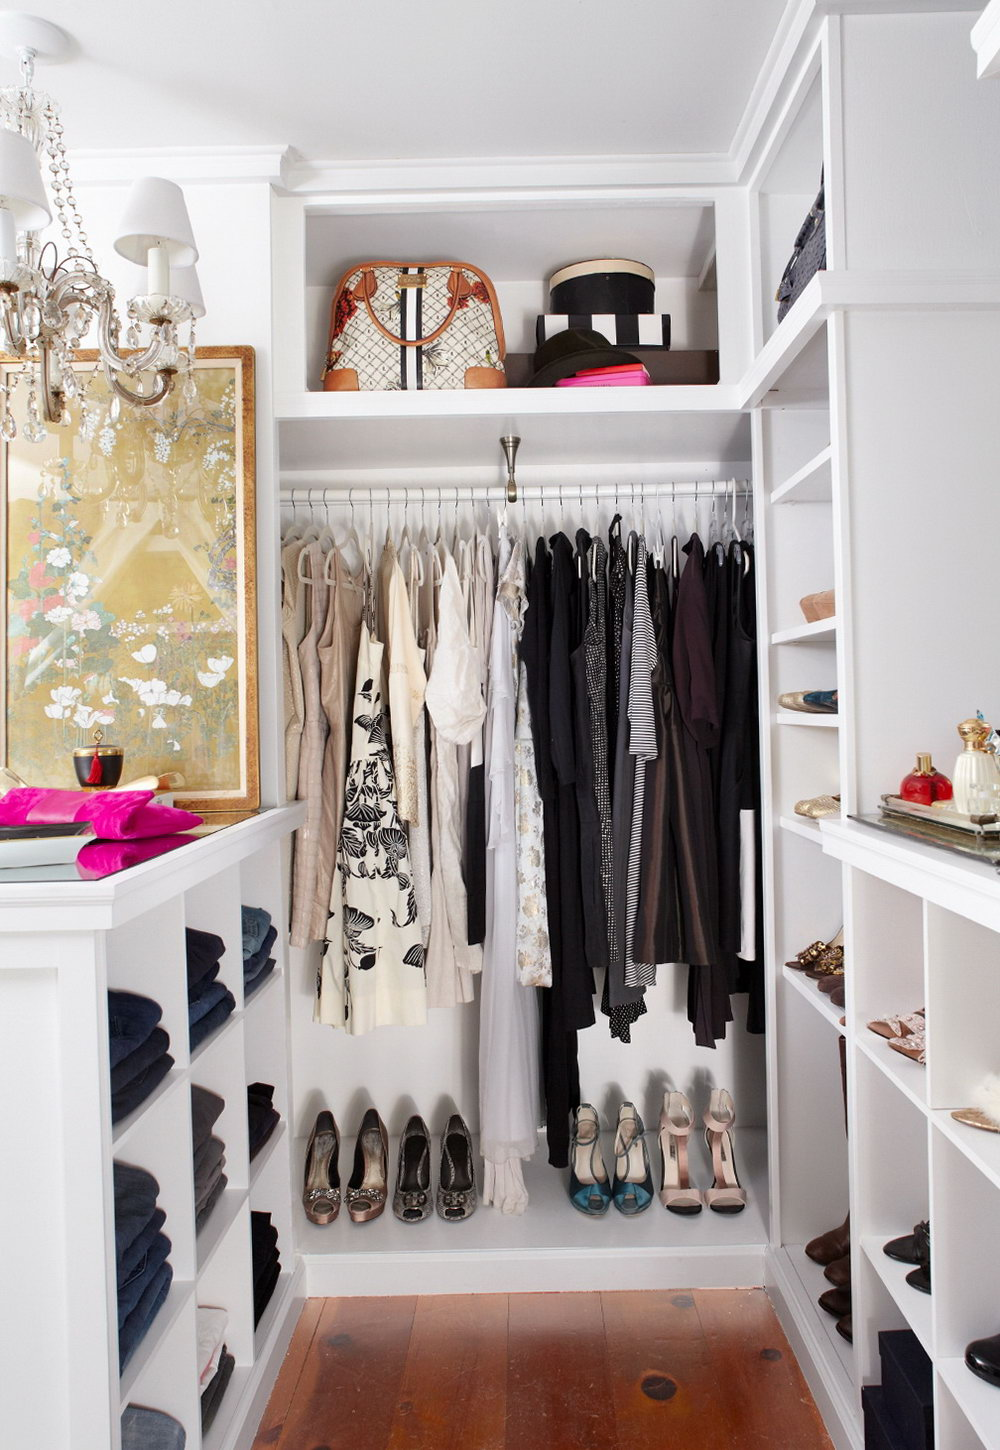 Small Walk In Closets | Diy Walk In Closet | Diy Walk In Closet Shelves